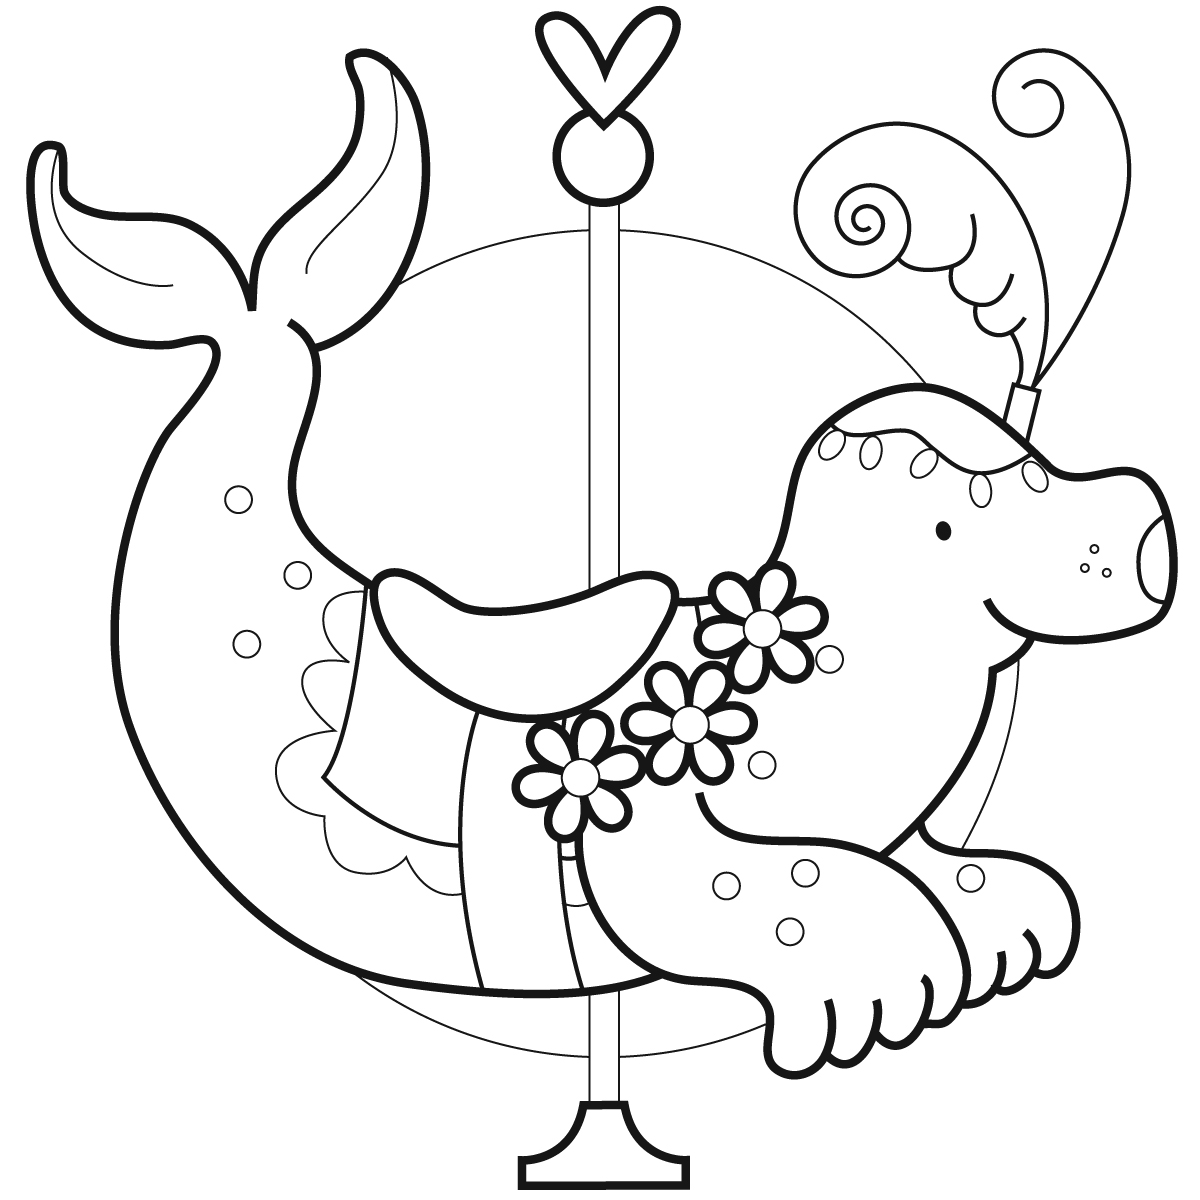 carasel coloring pages - photo#34